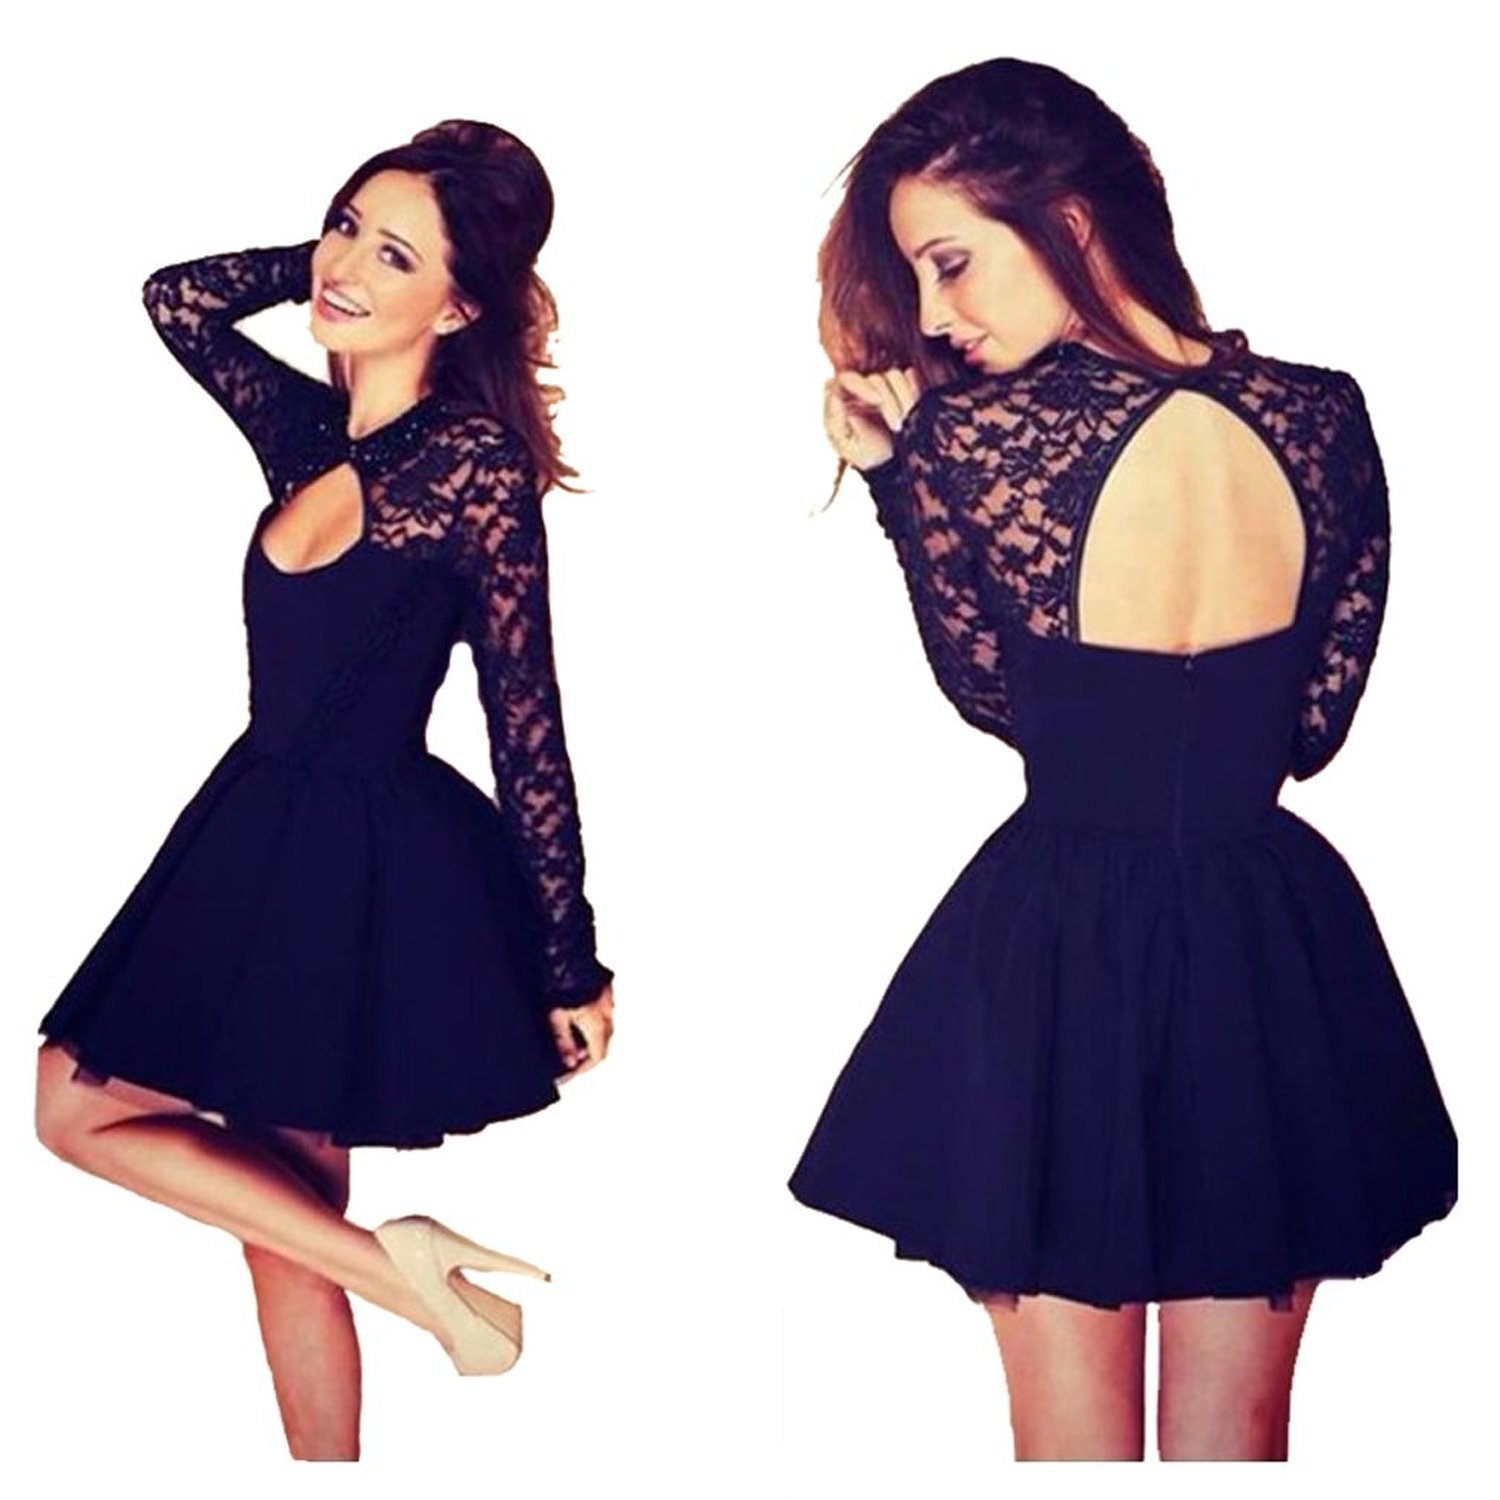 a3596f02b29e0 Wildgirl Women's Hollow Lace Sleeves Fit and Flare Party Cocktail Dress |  Amazon.com